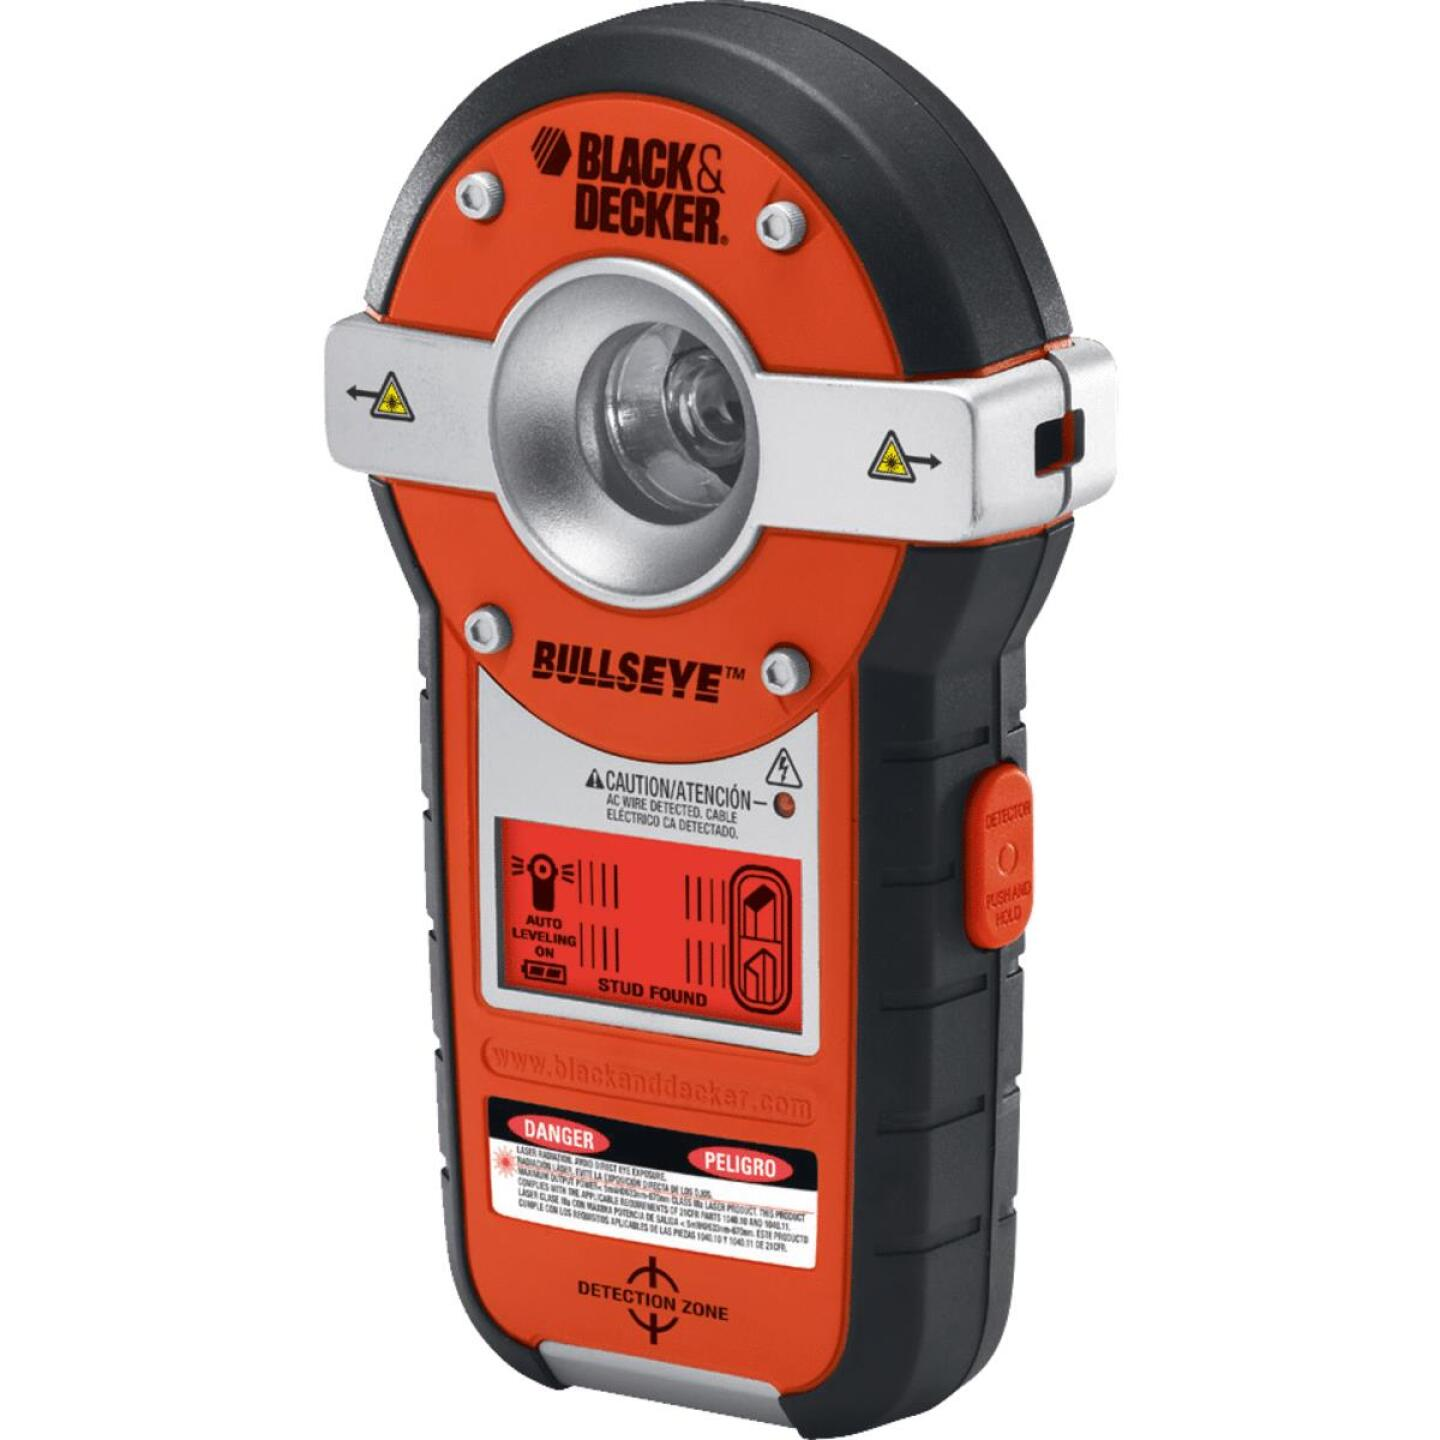 Black & Decker Bullseye 20 Ft. Self-Leveling Line Laser Level with Stud Sensor Image 7